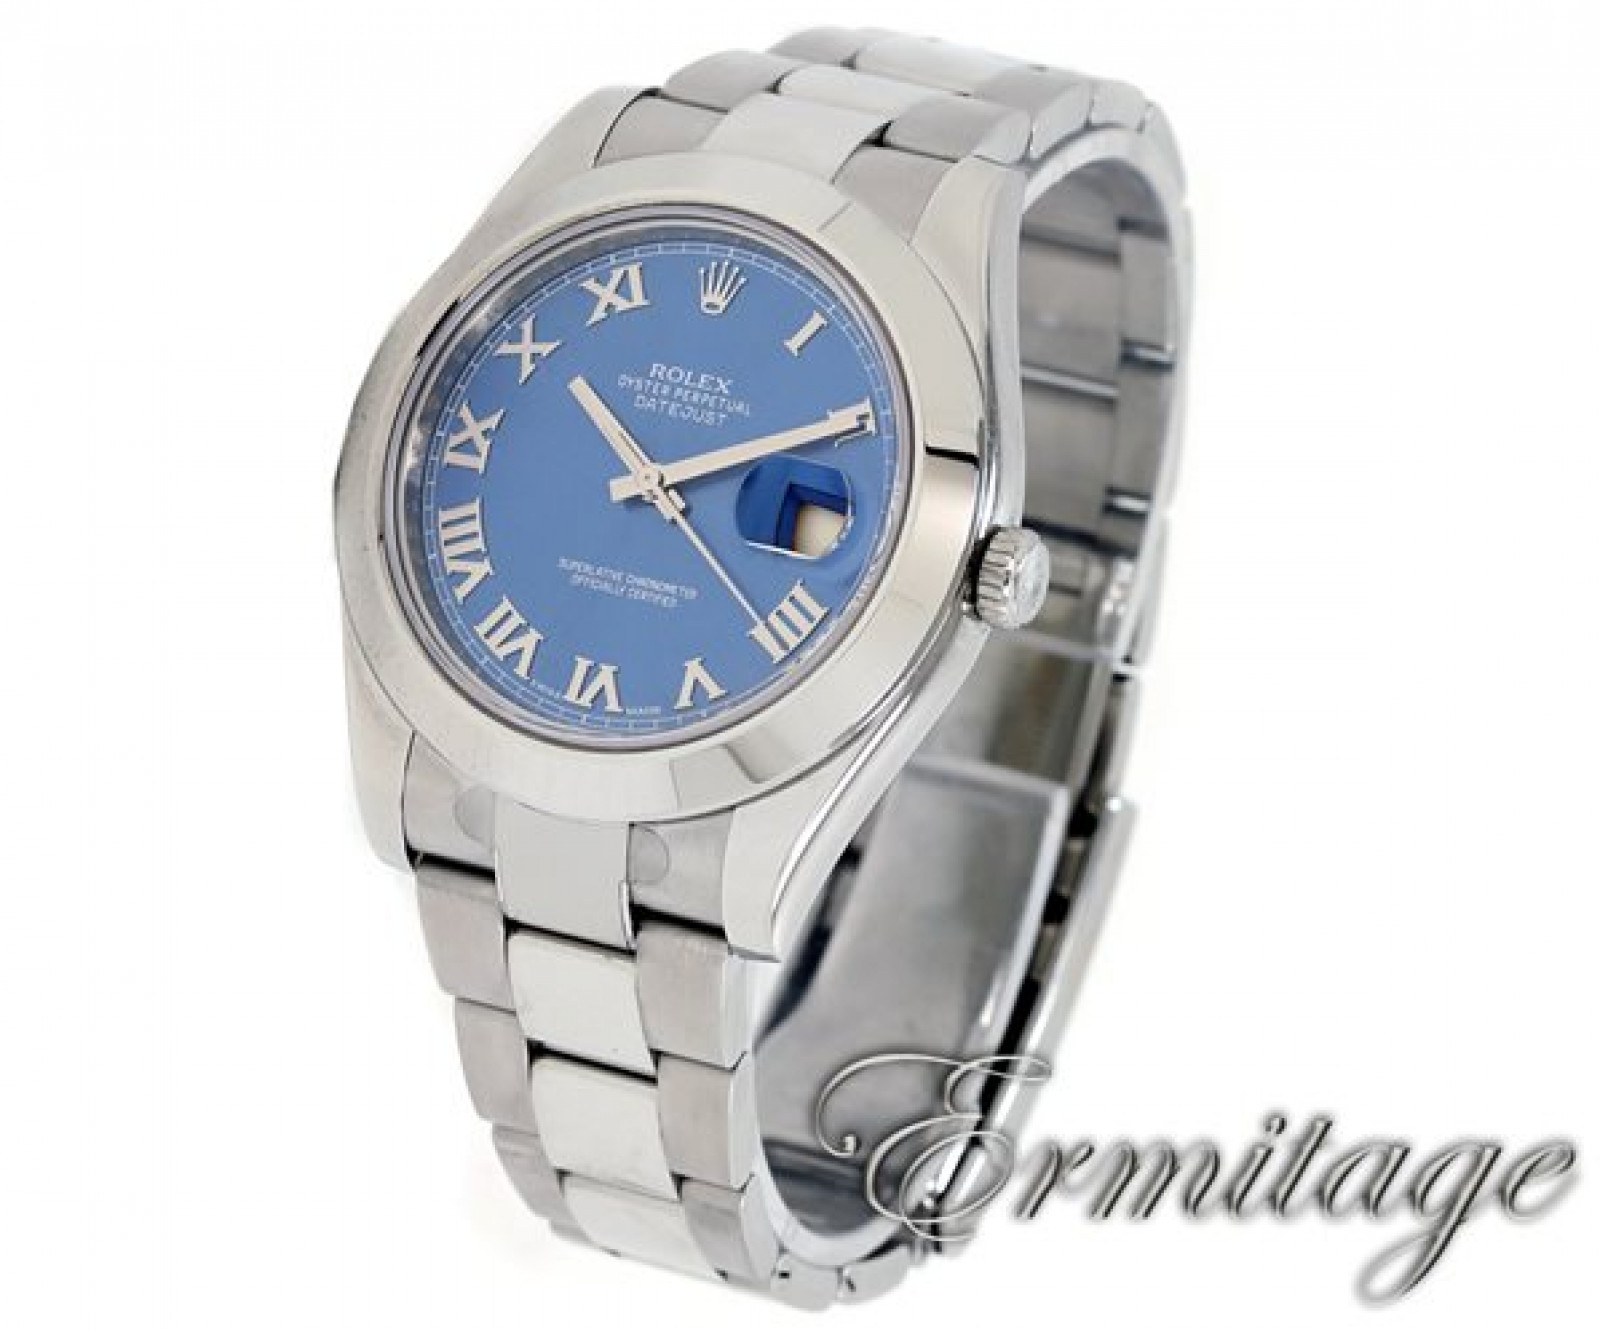 Rolex Datejust II 116300 Steel with Blue Dial